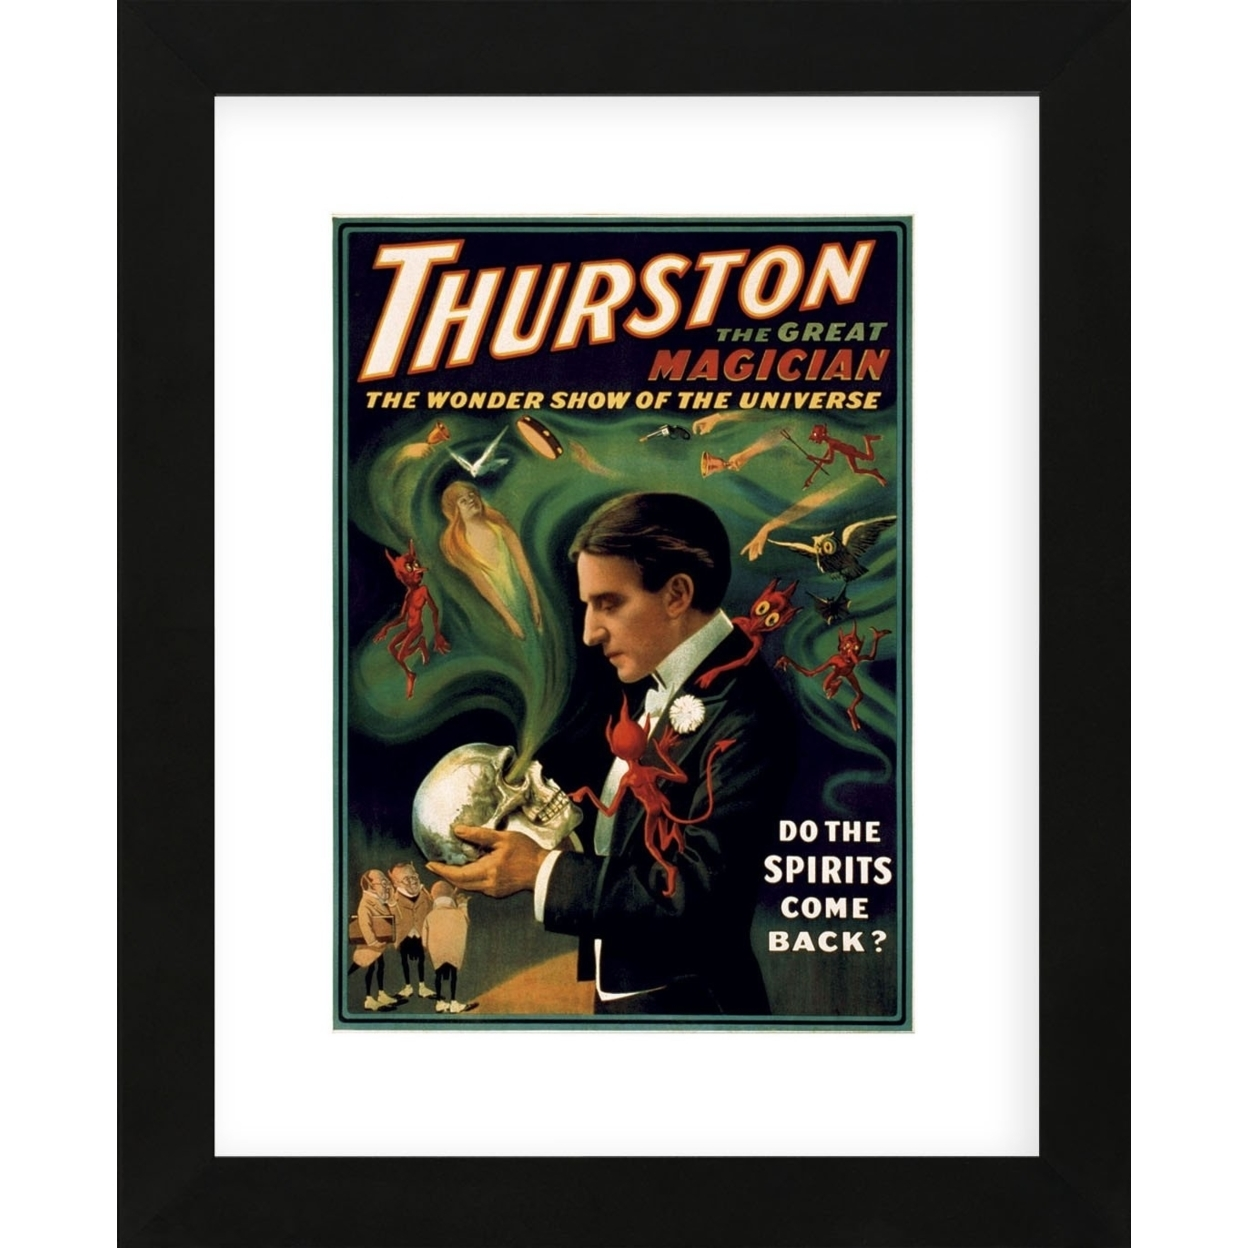 Thurston the Great Magician (Framed) 591dd165c98fc4637f5cc167